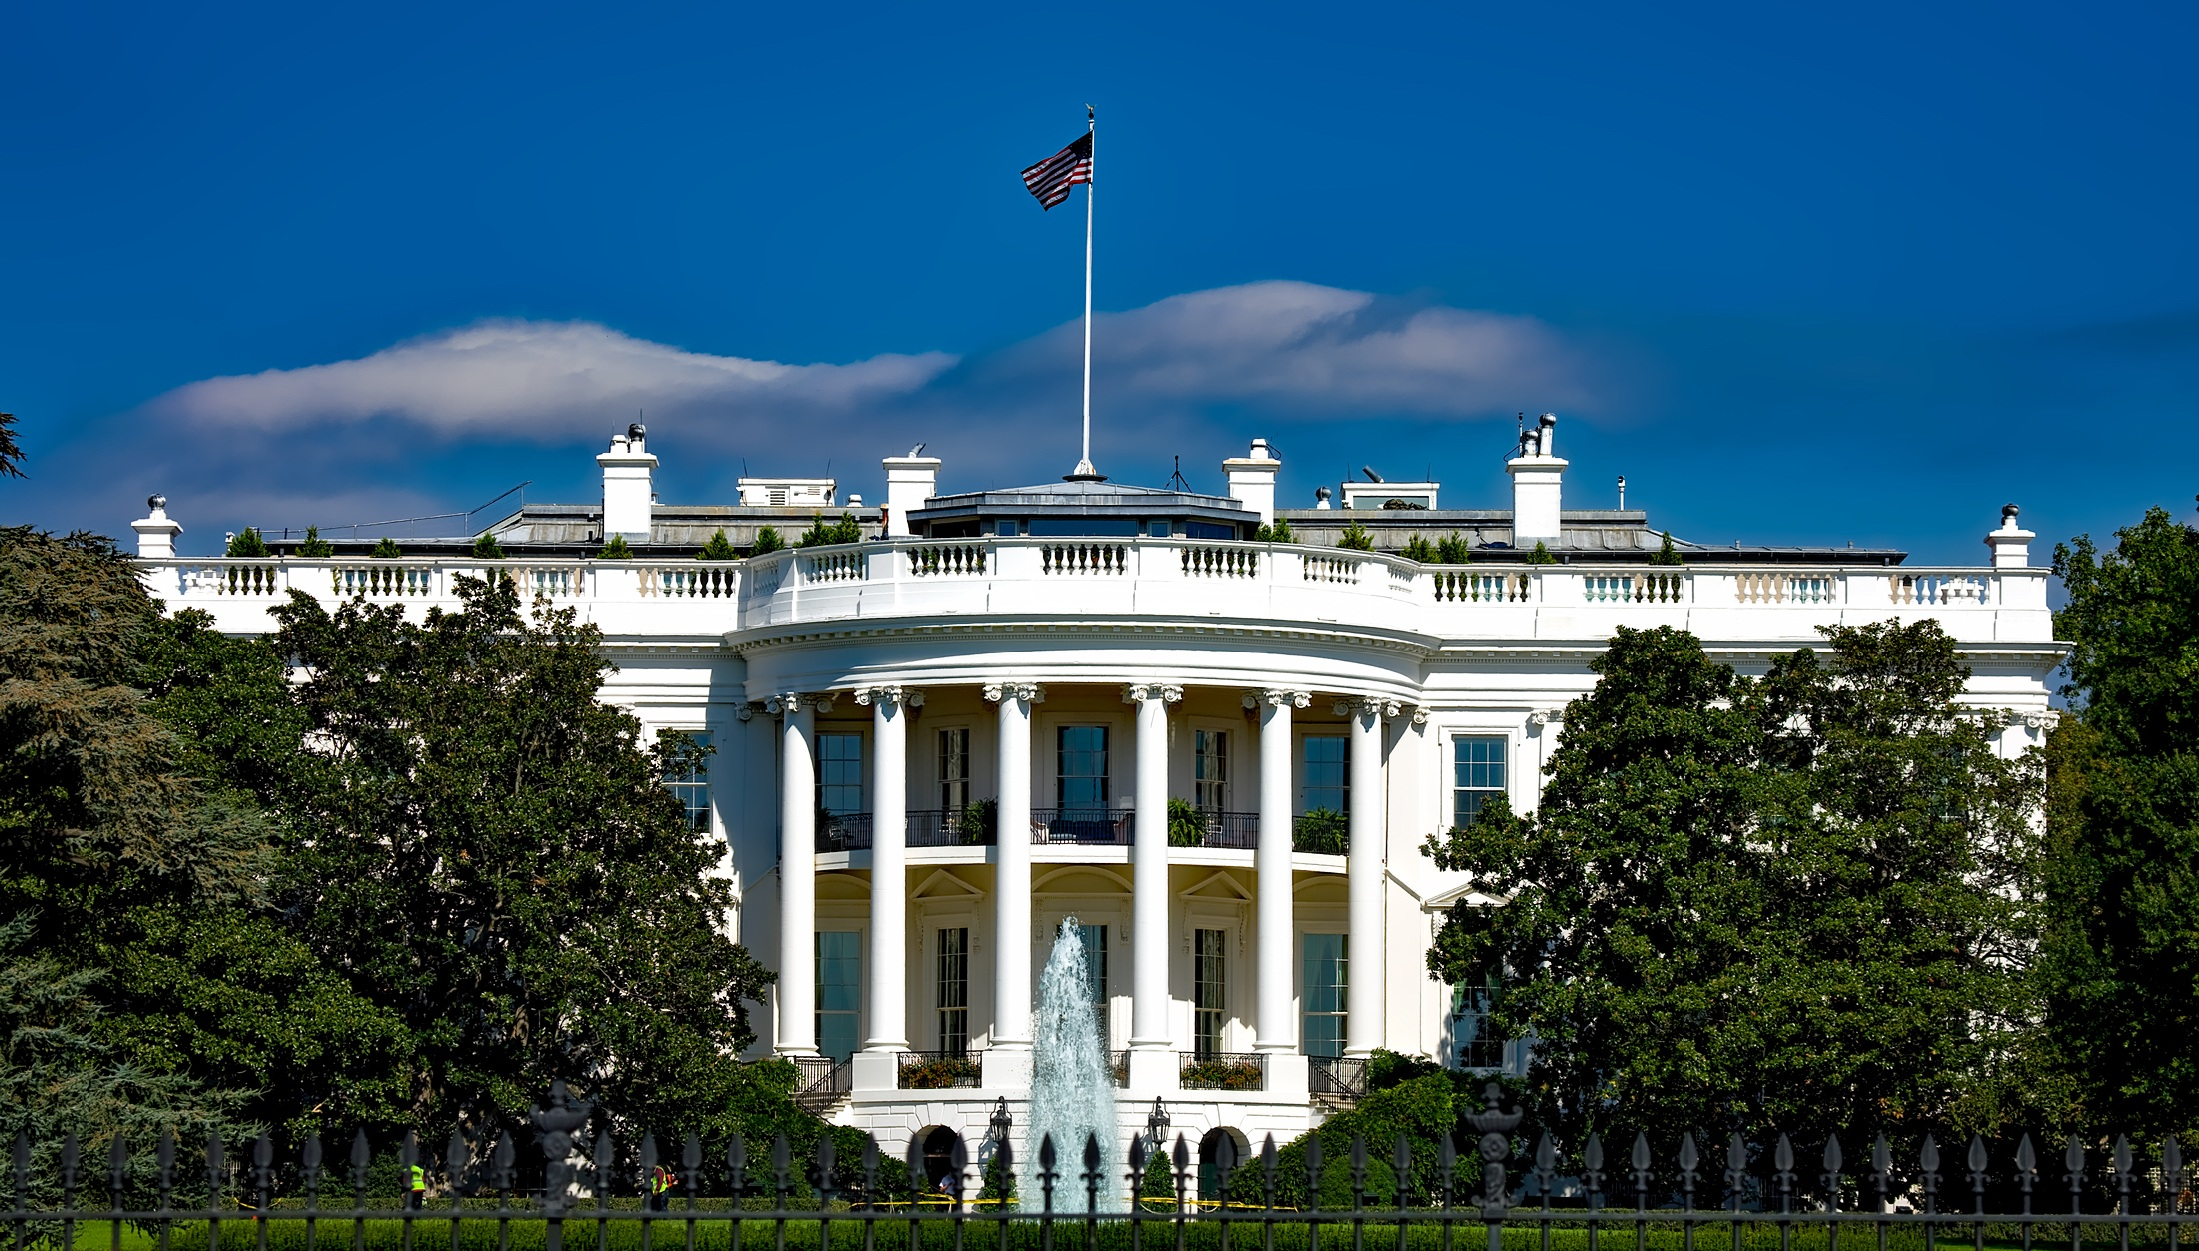 Best Place in Washington DC-The White House